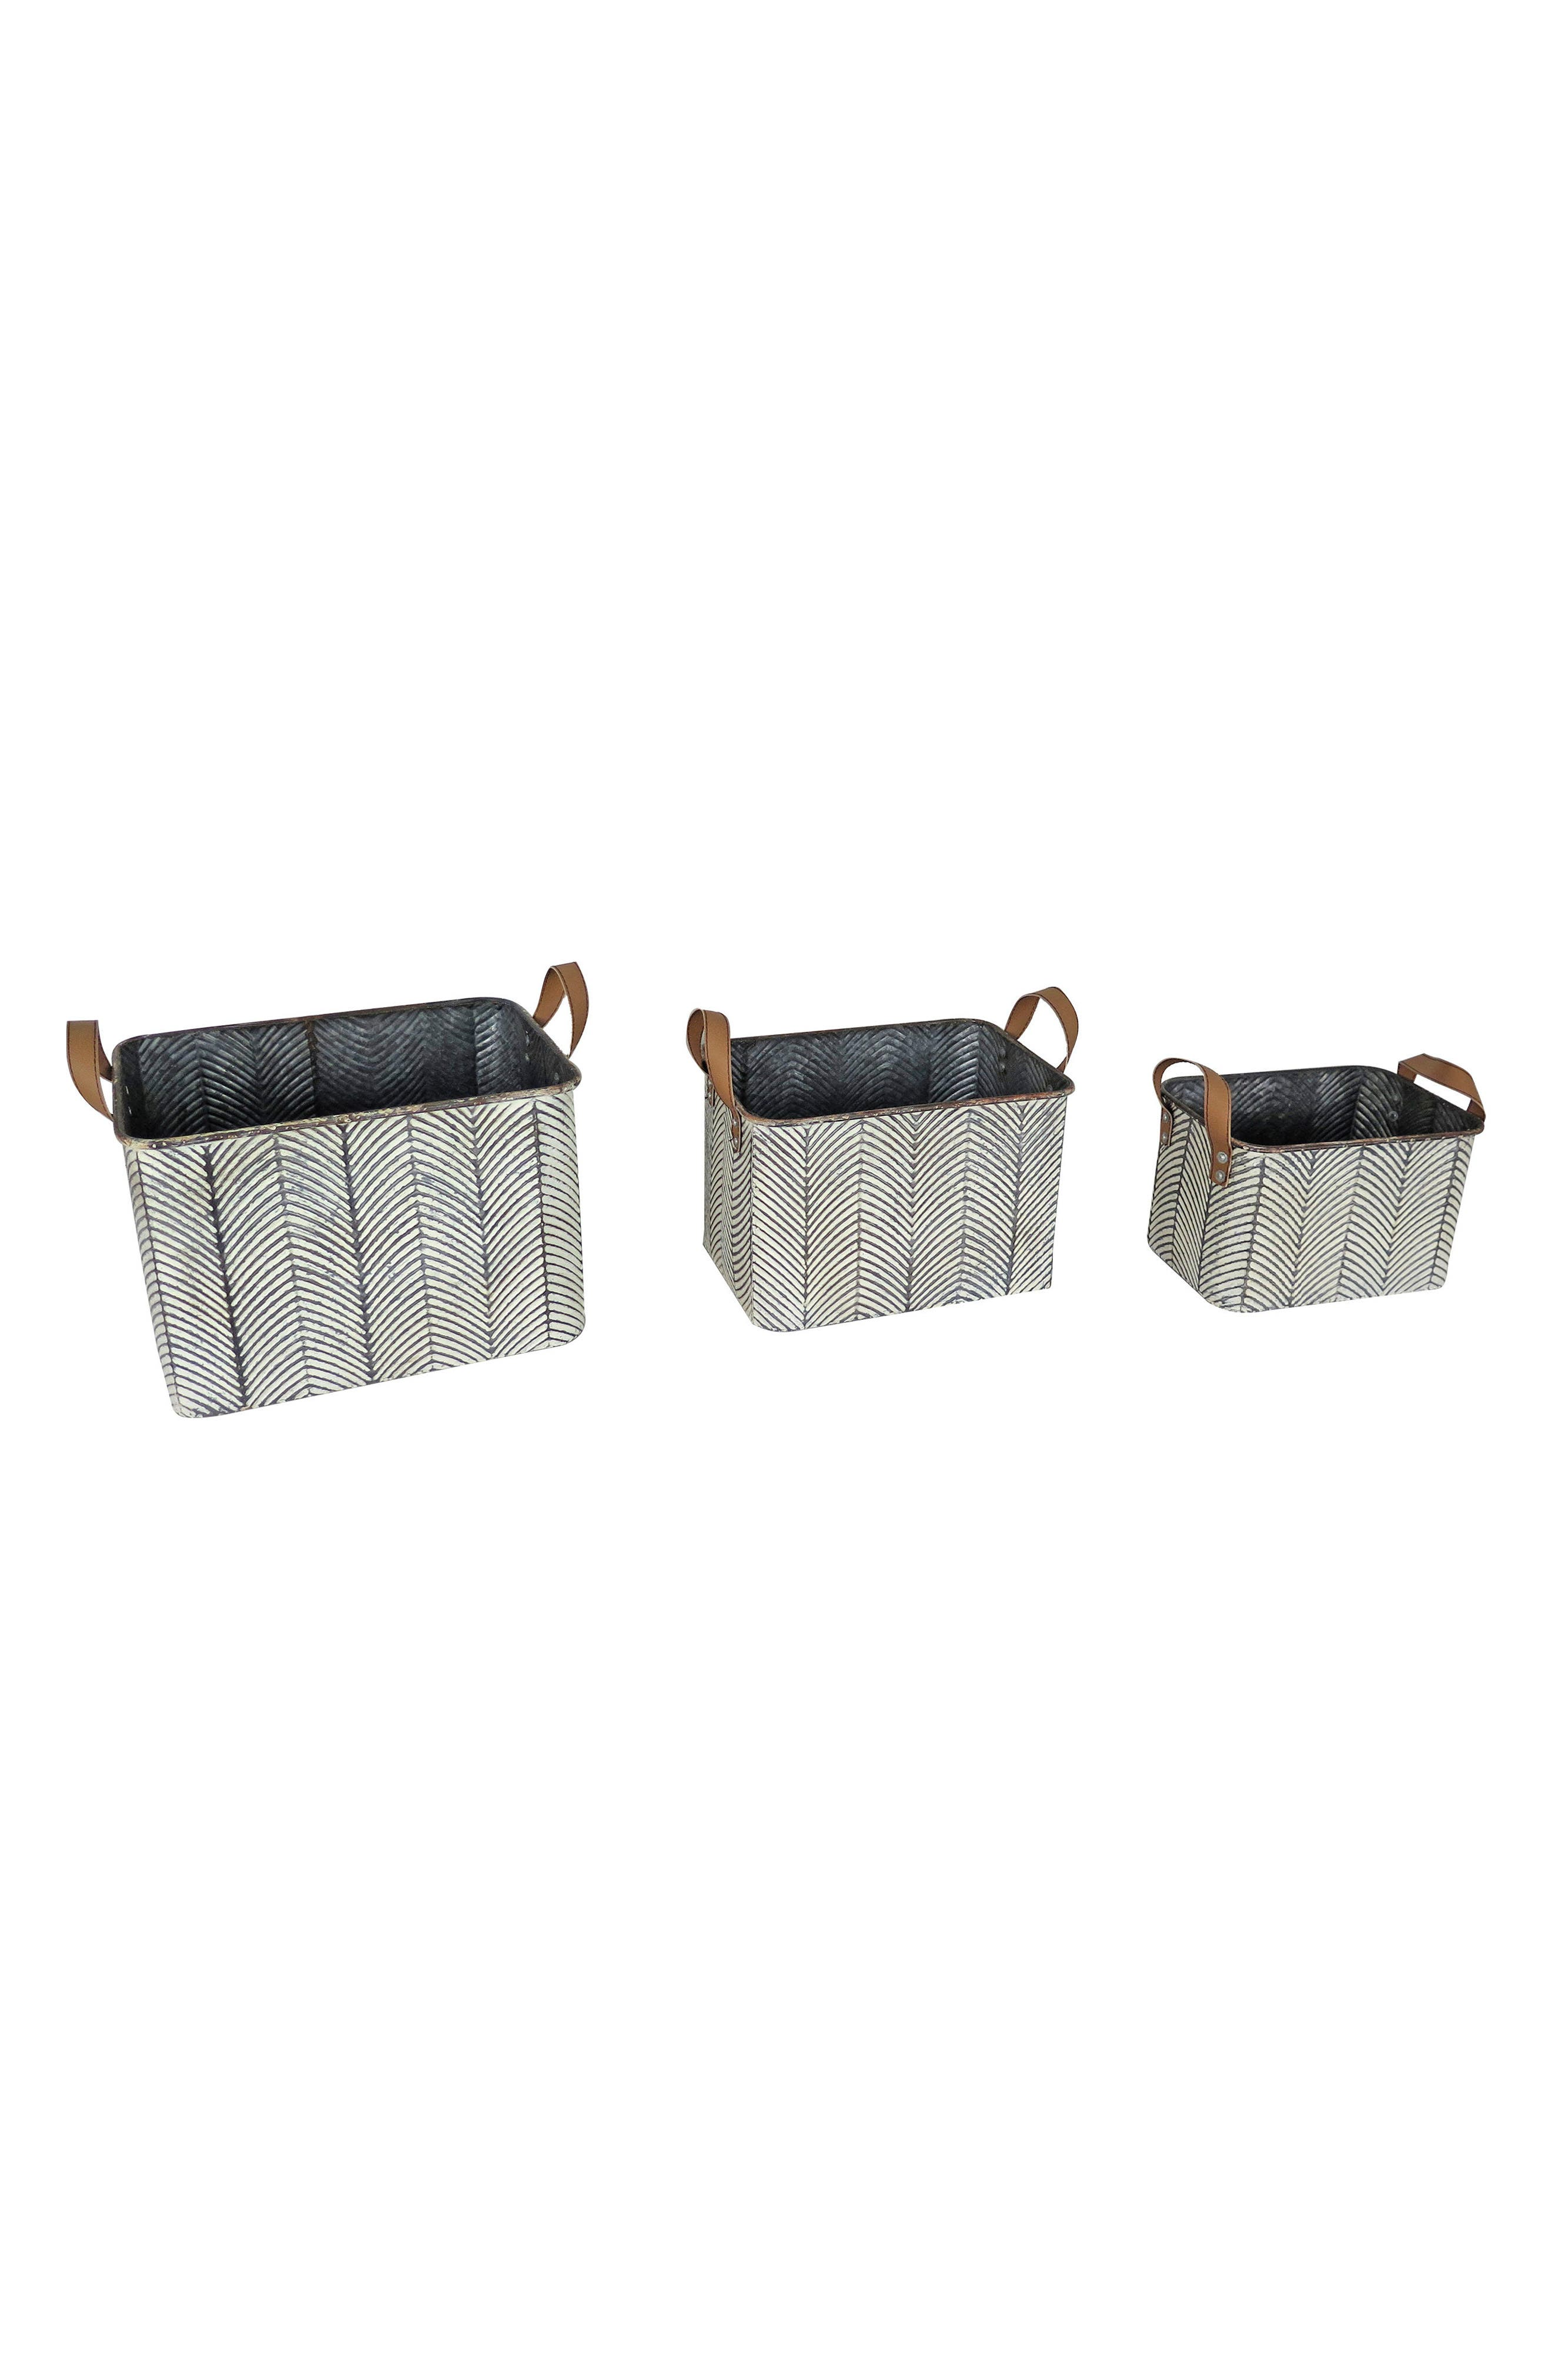 Braxton Set of 3 Baskets,                         Main,                         color, Metal/ Faux Leather